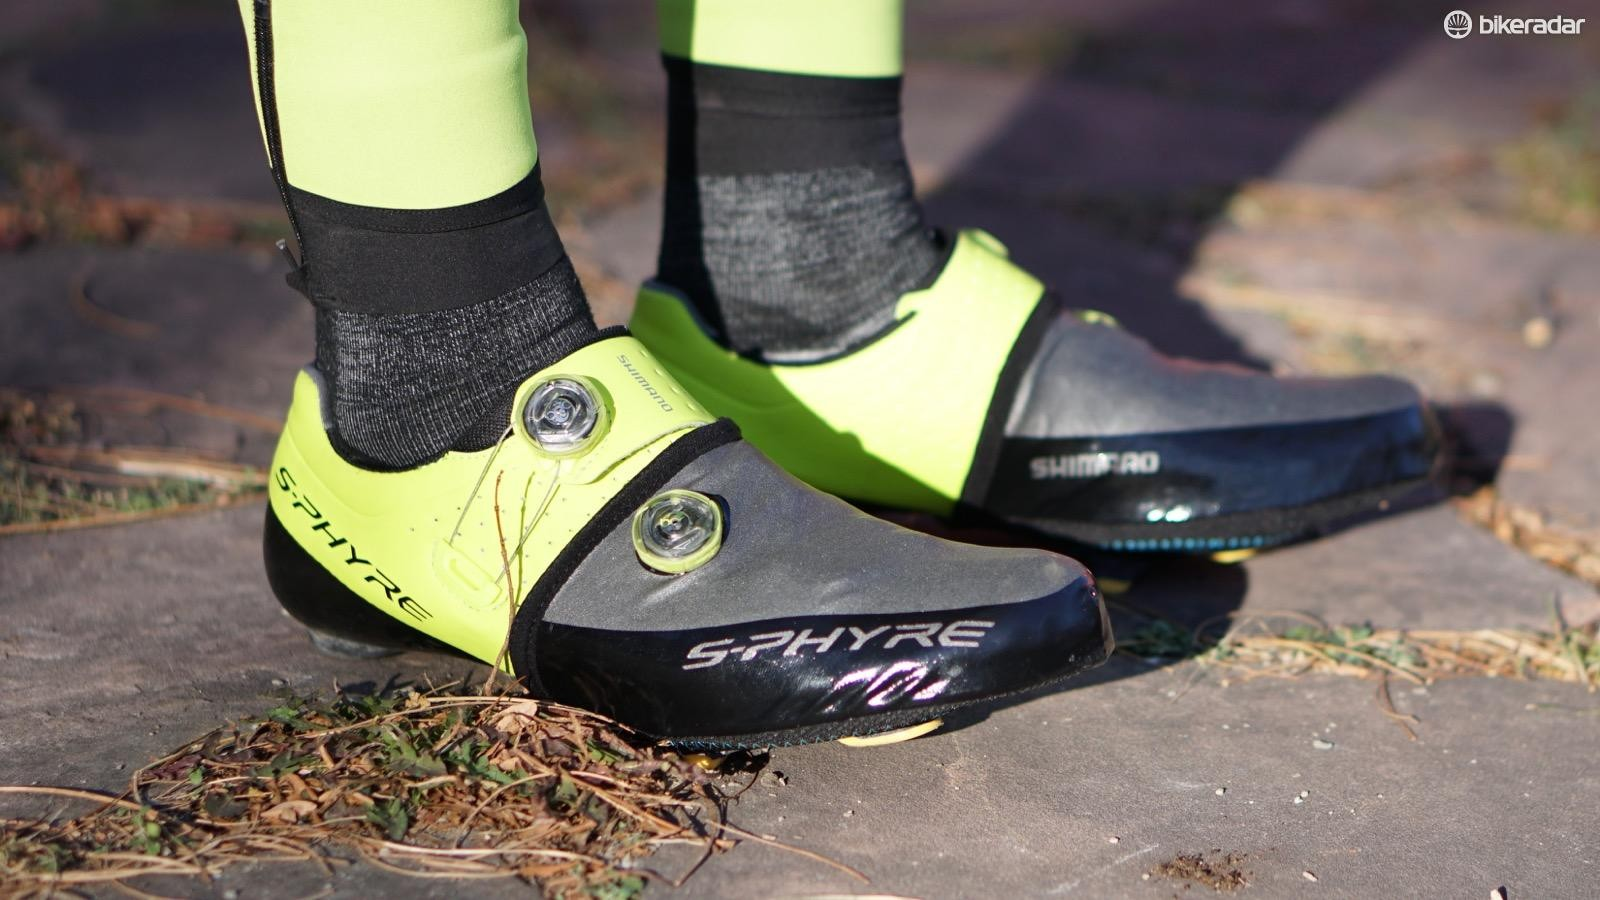 Shimano's S-Phyre toe covers keep the chill off